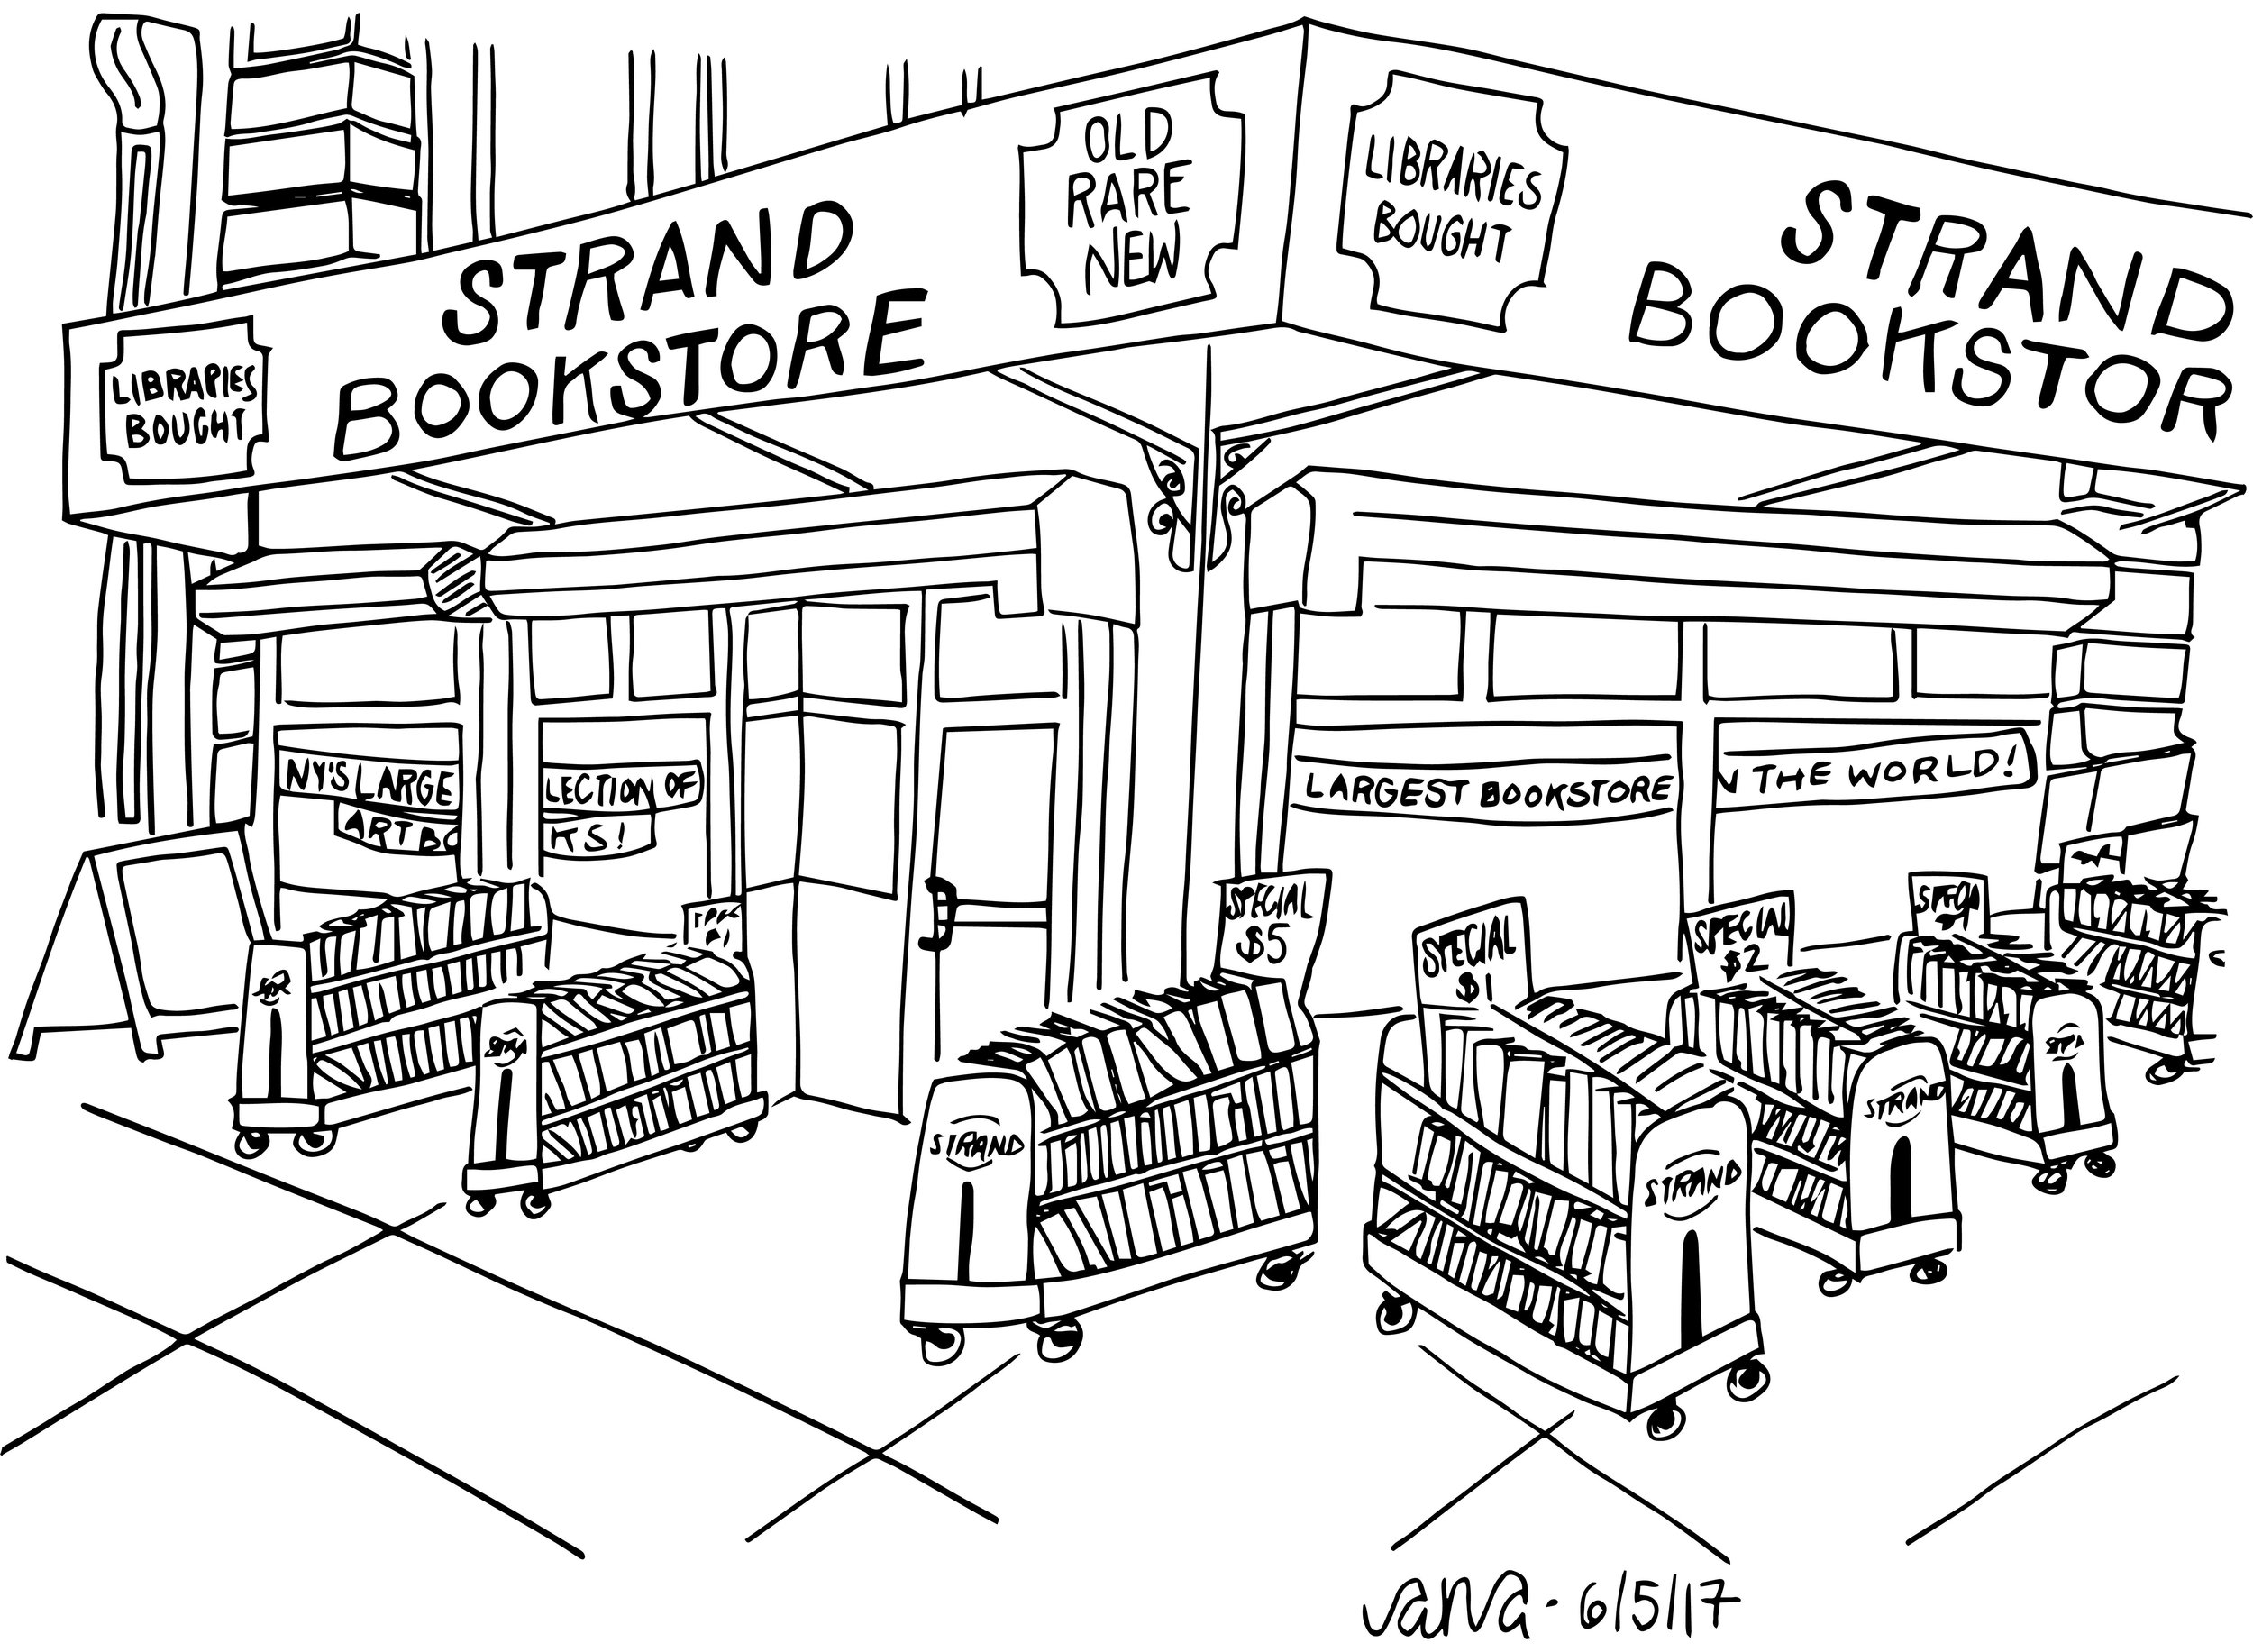 Strand Bookstore The Spots Ana Handmade